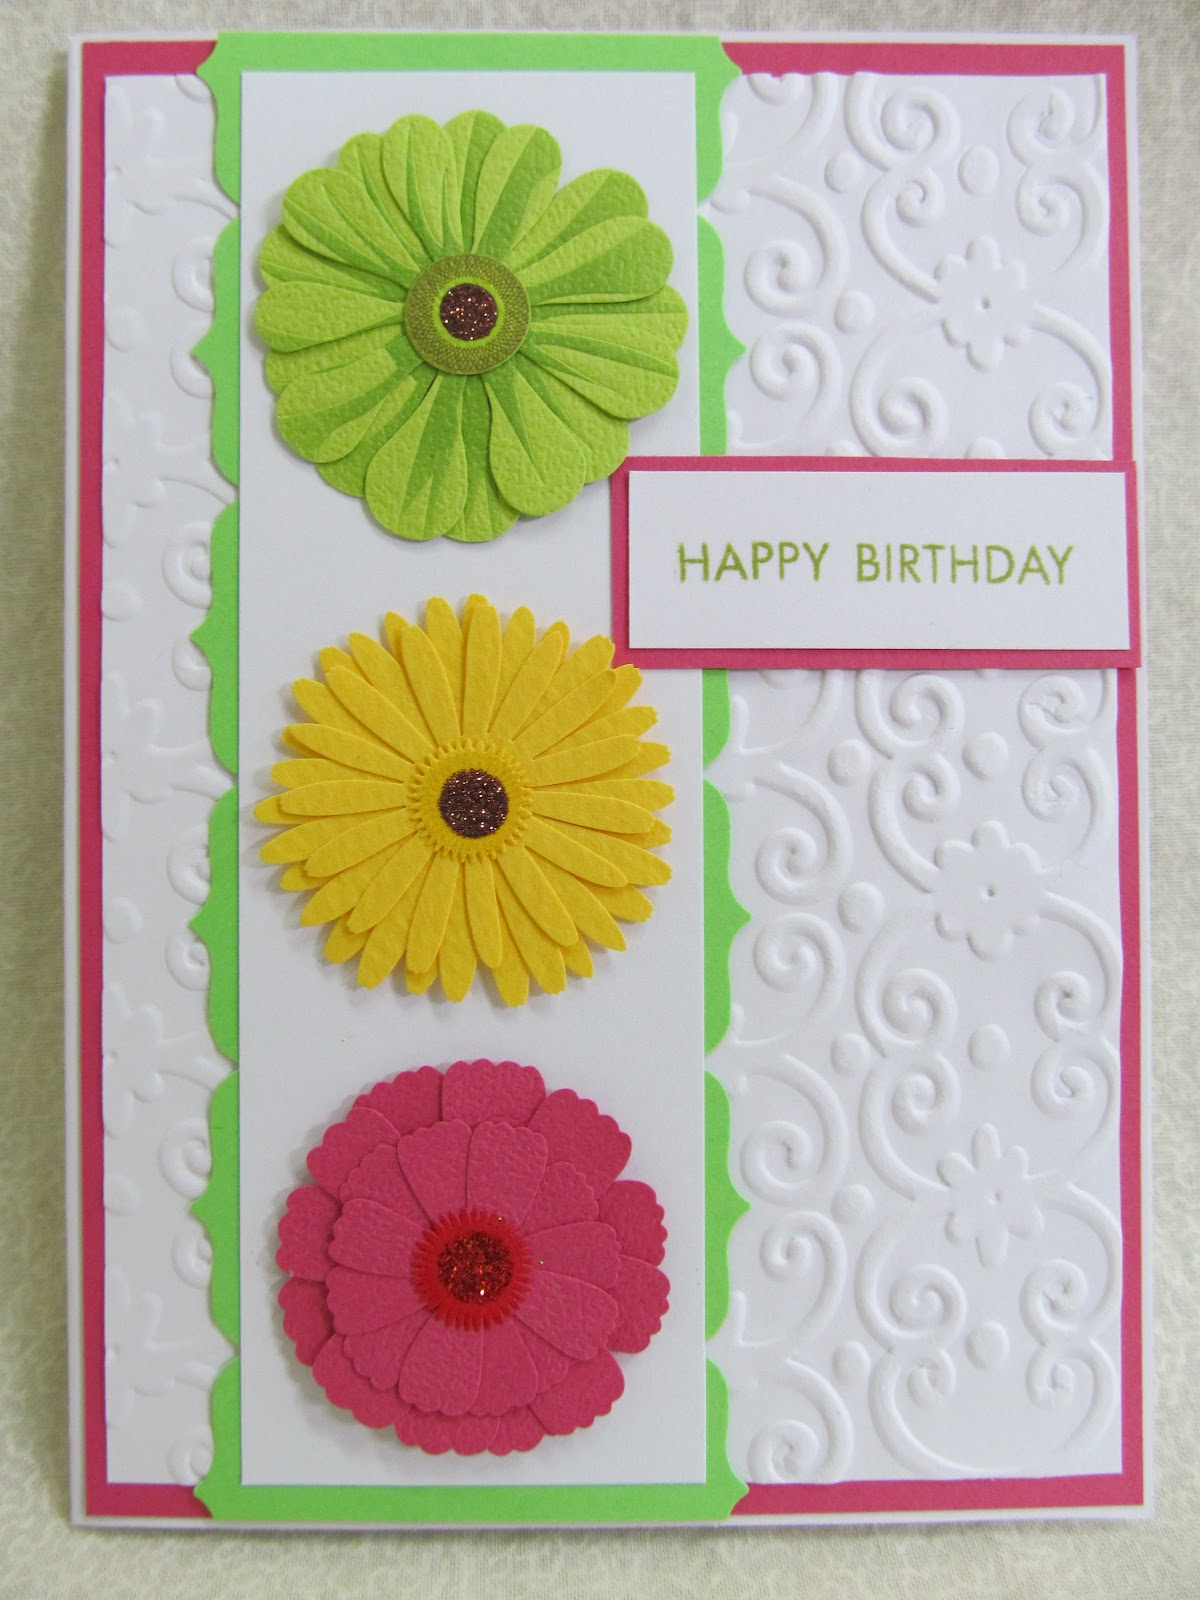 Savvy Handmade Cards: April 2012